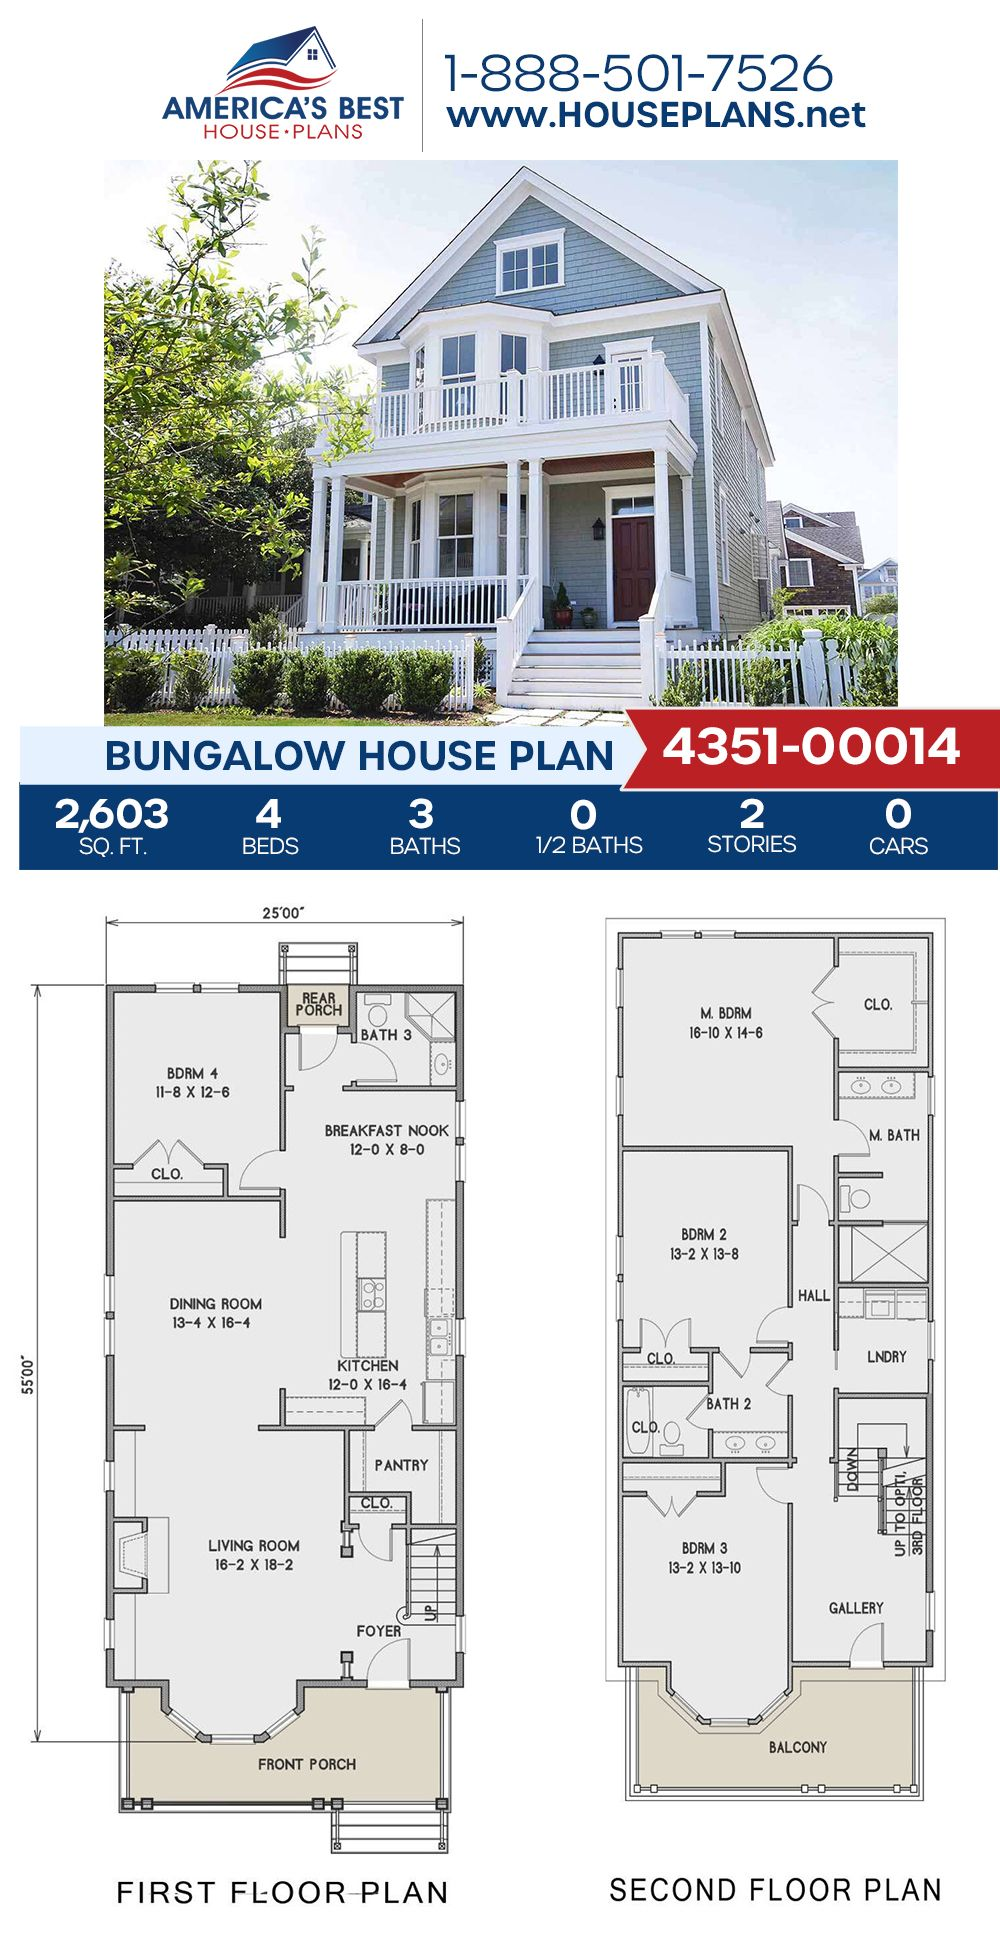 House Plan 4351 00014 Bungalow Plan 2 603 Square Feet 4 Bedrooms 3 Bathrooms In 2020 Bungalow House Plans House Plans Best House Plans